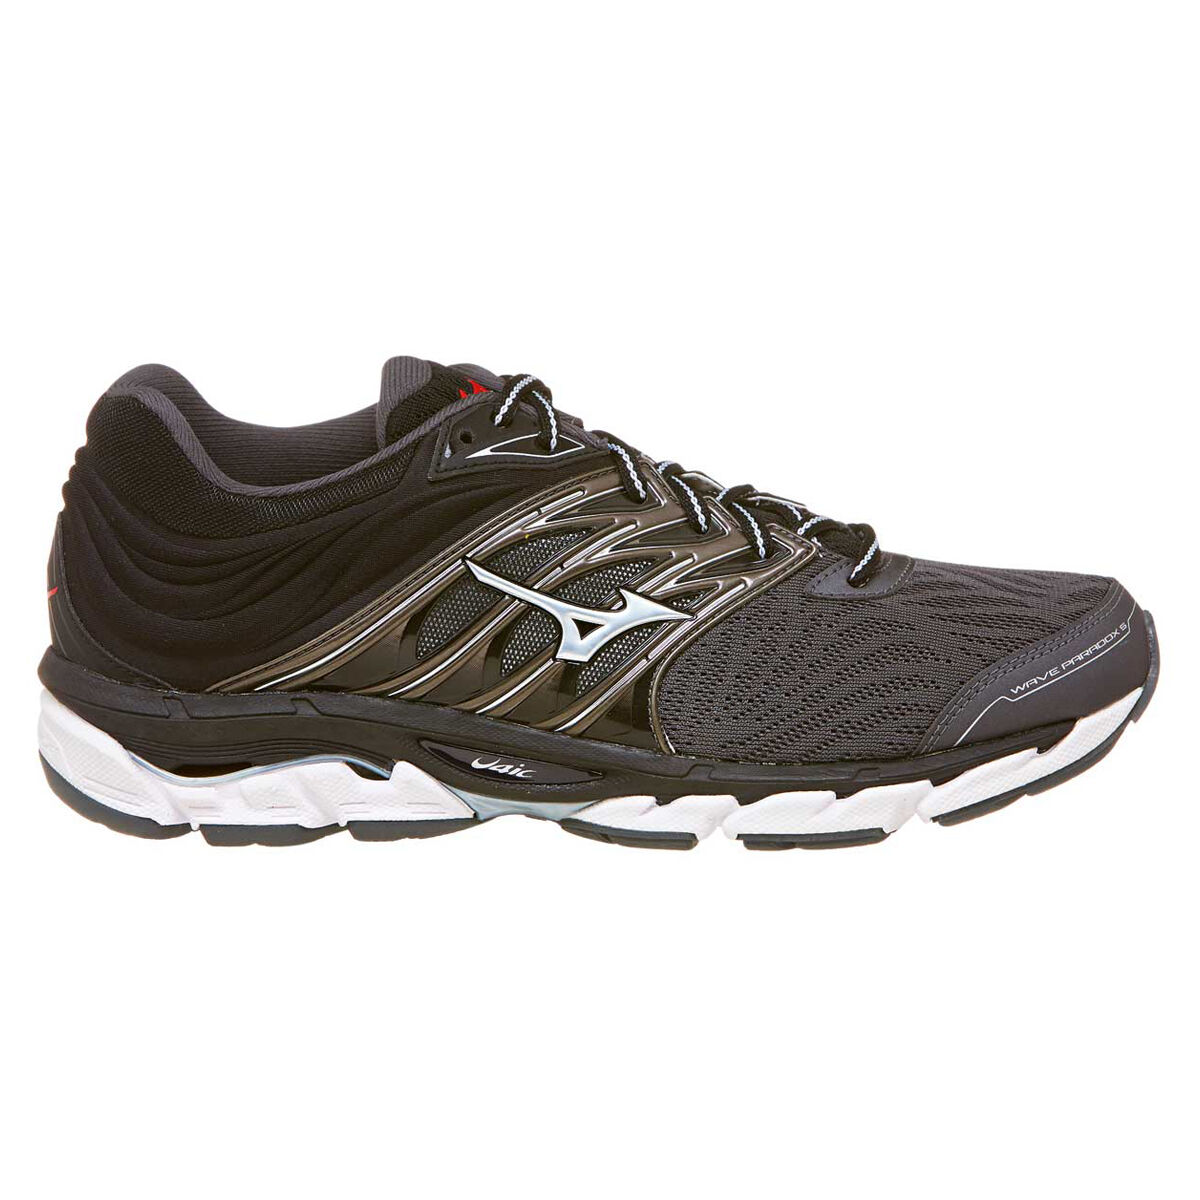 mizuno wave paradox 3 review quality examples 4th